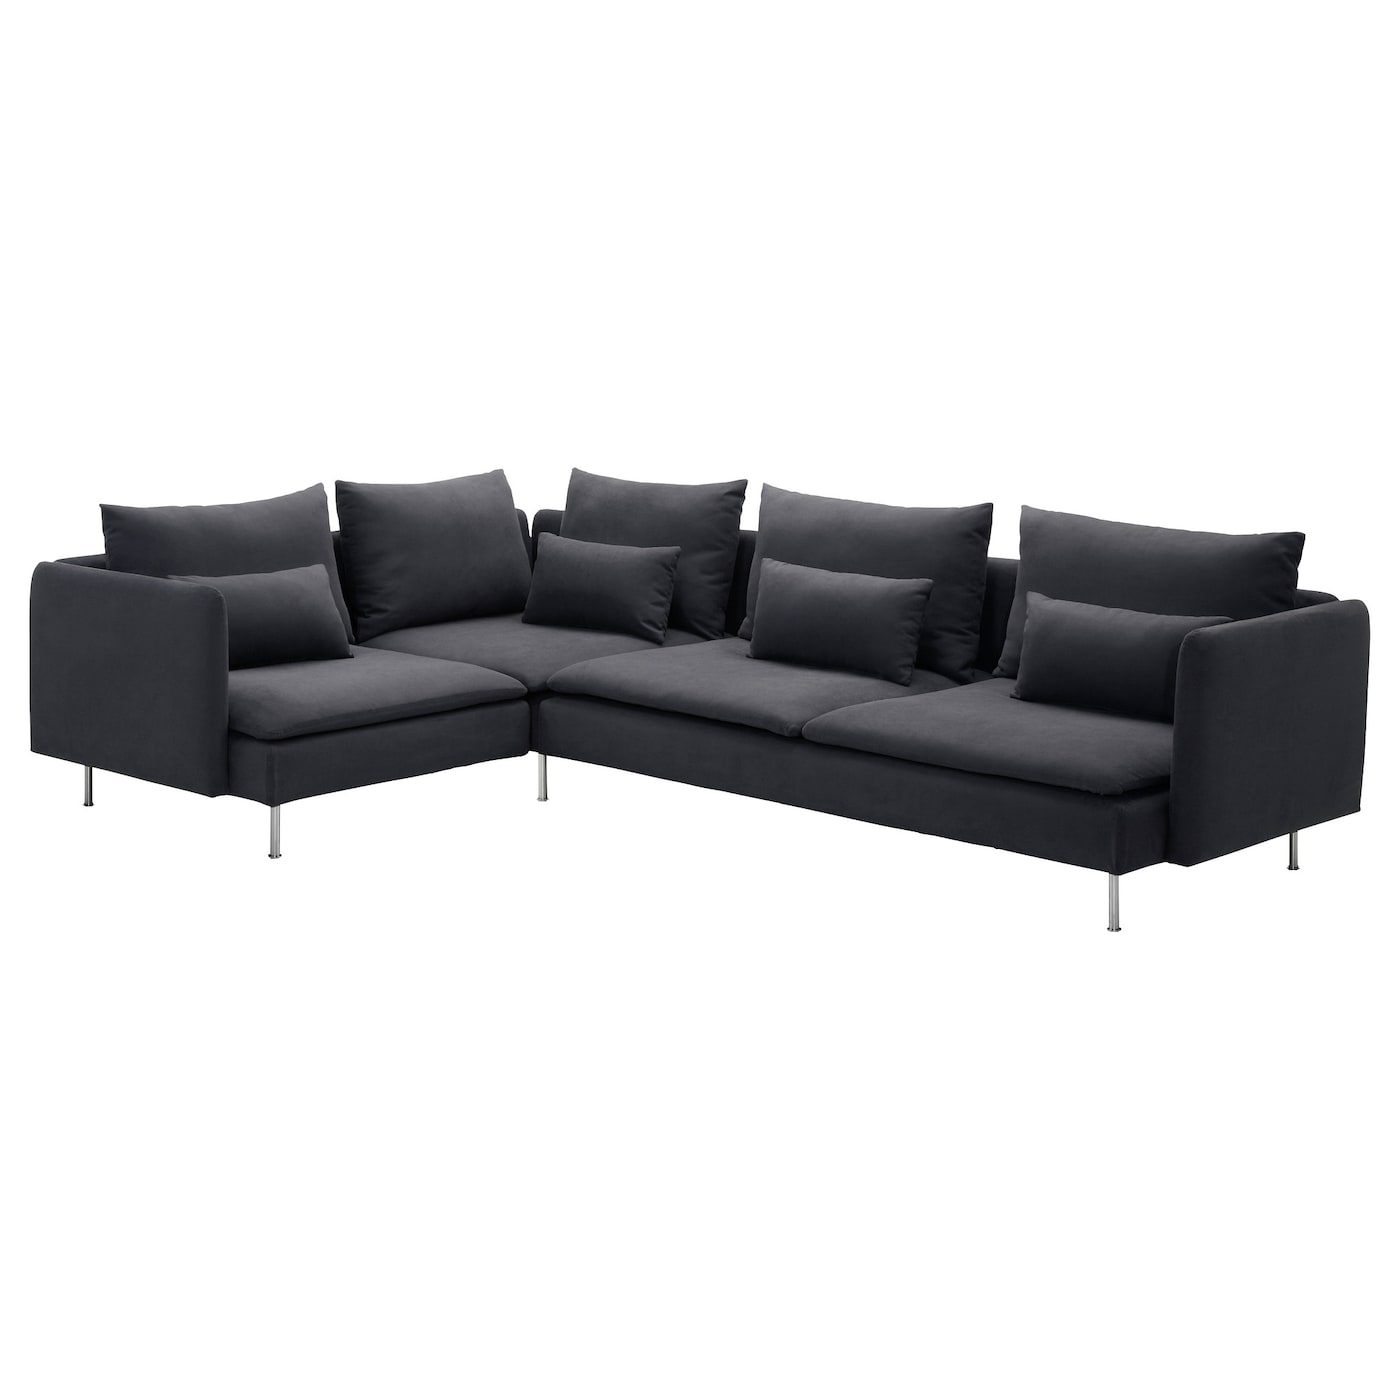 S derhamn corner sofa 4 seat samsta dark grey 291x198 cm for Sofa en l liquidation